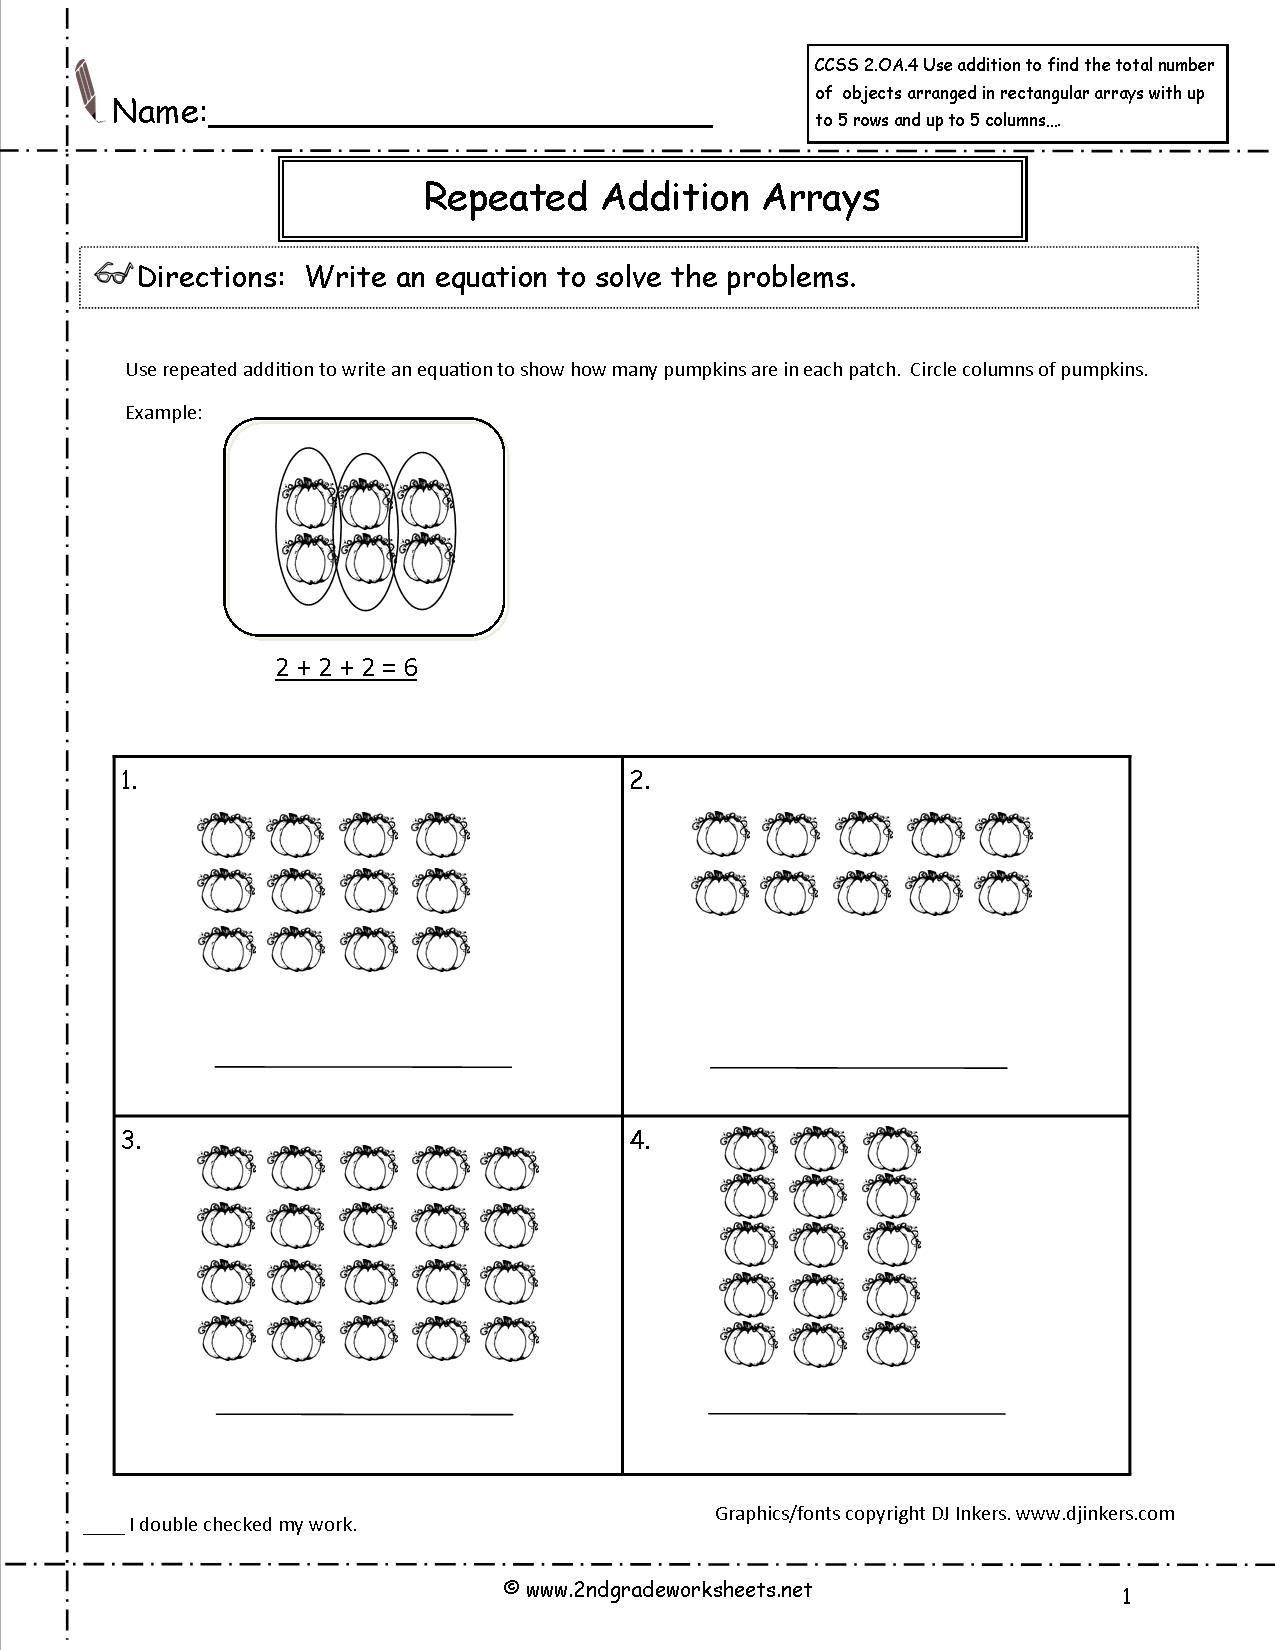 Repeated Addition Worksheets 2nd Grade Pumpkins Repeated Addition Worksheet